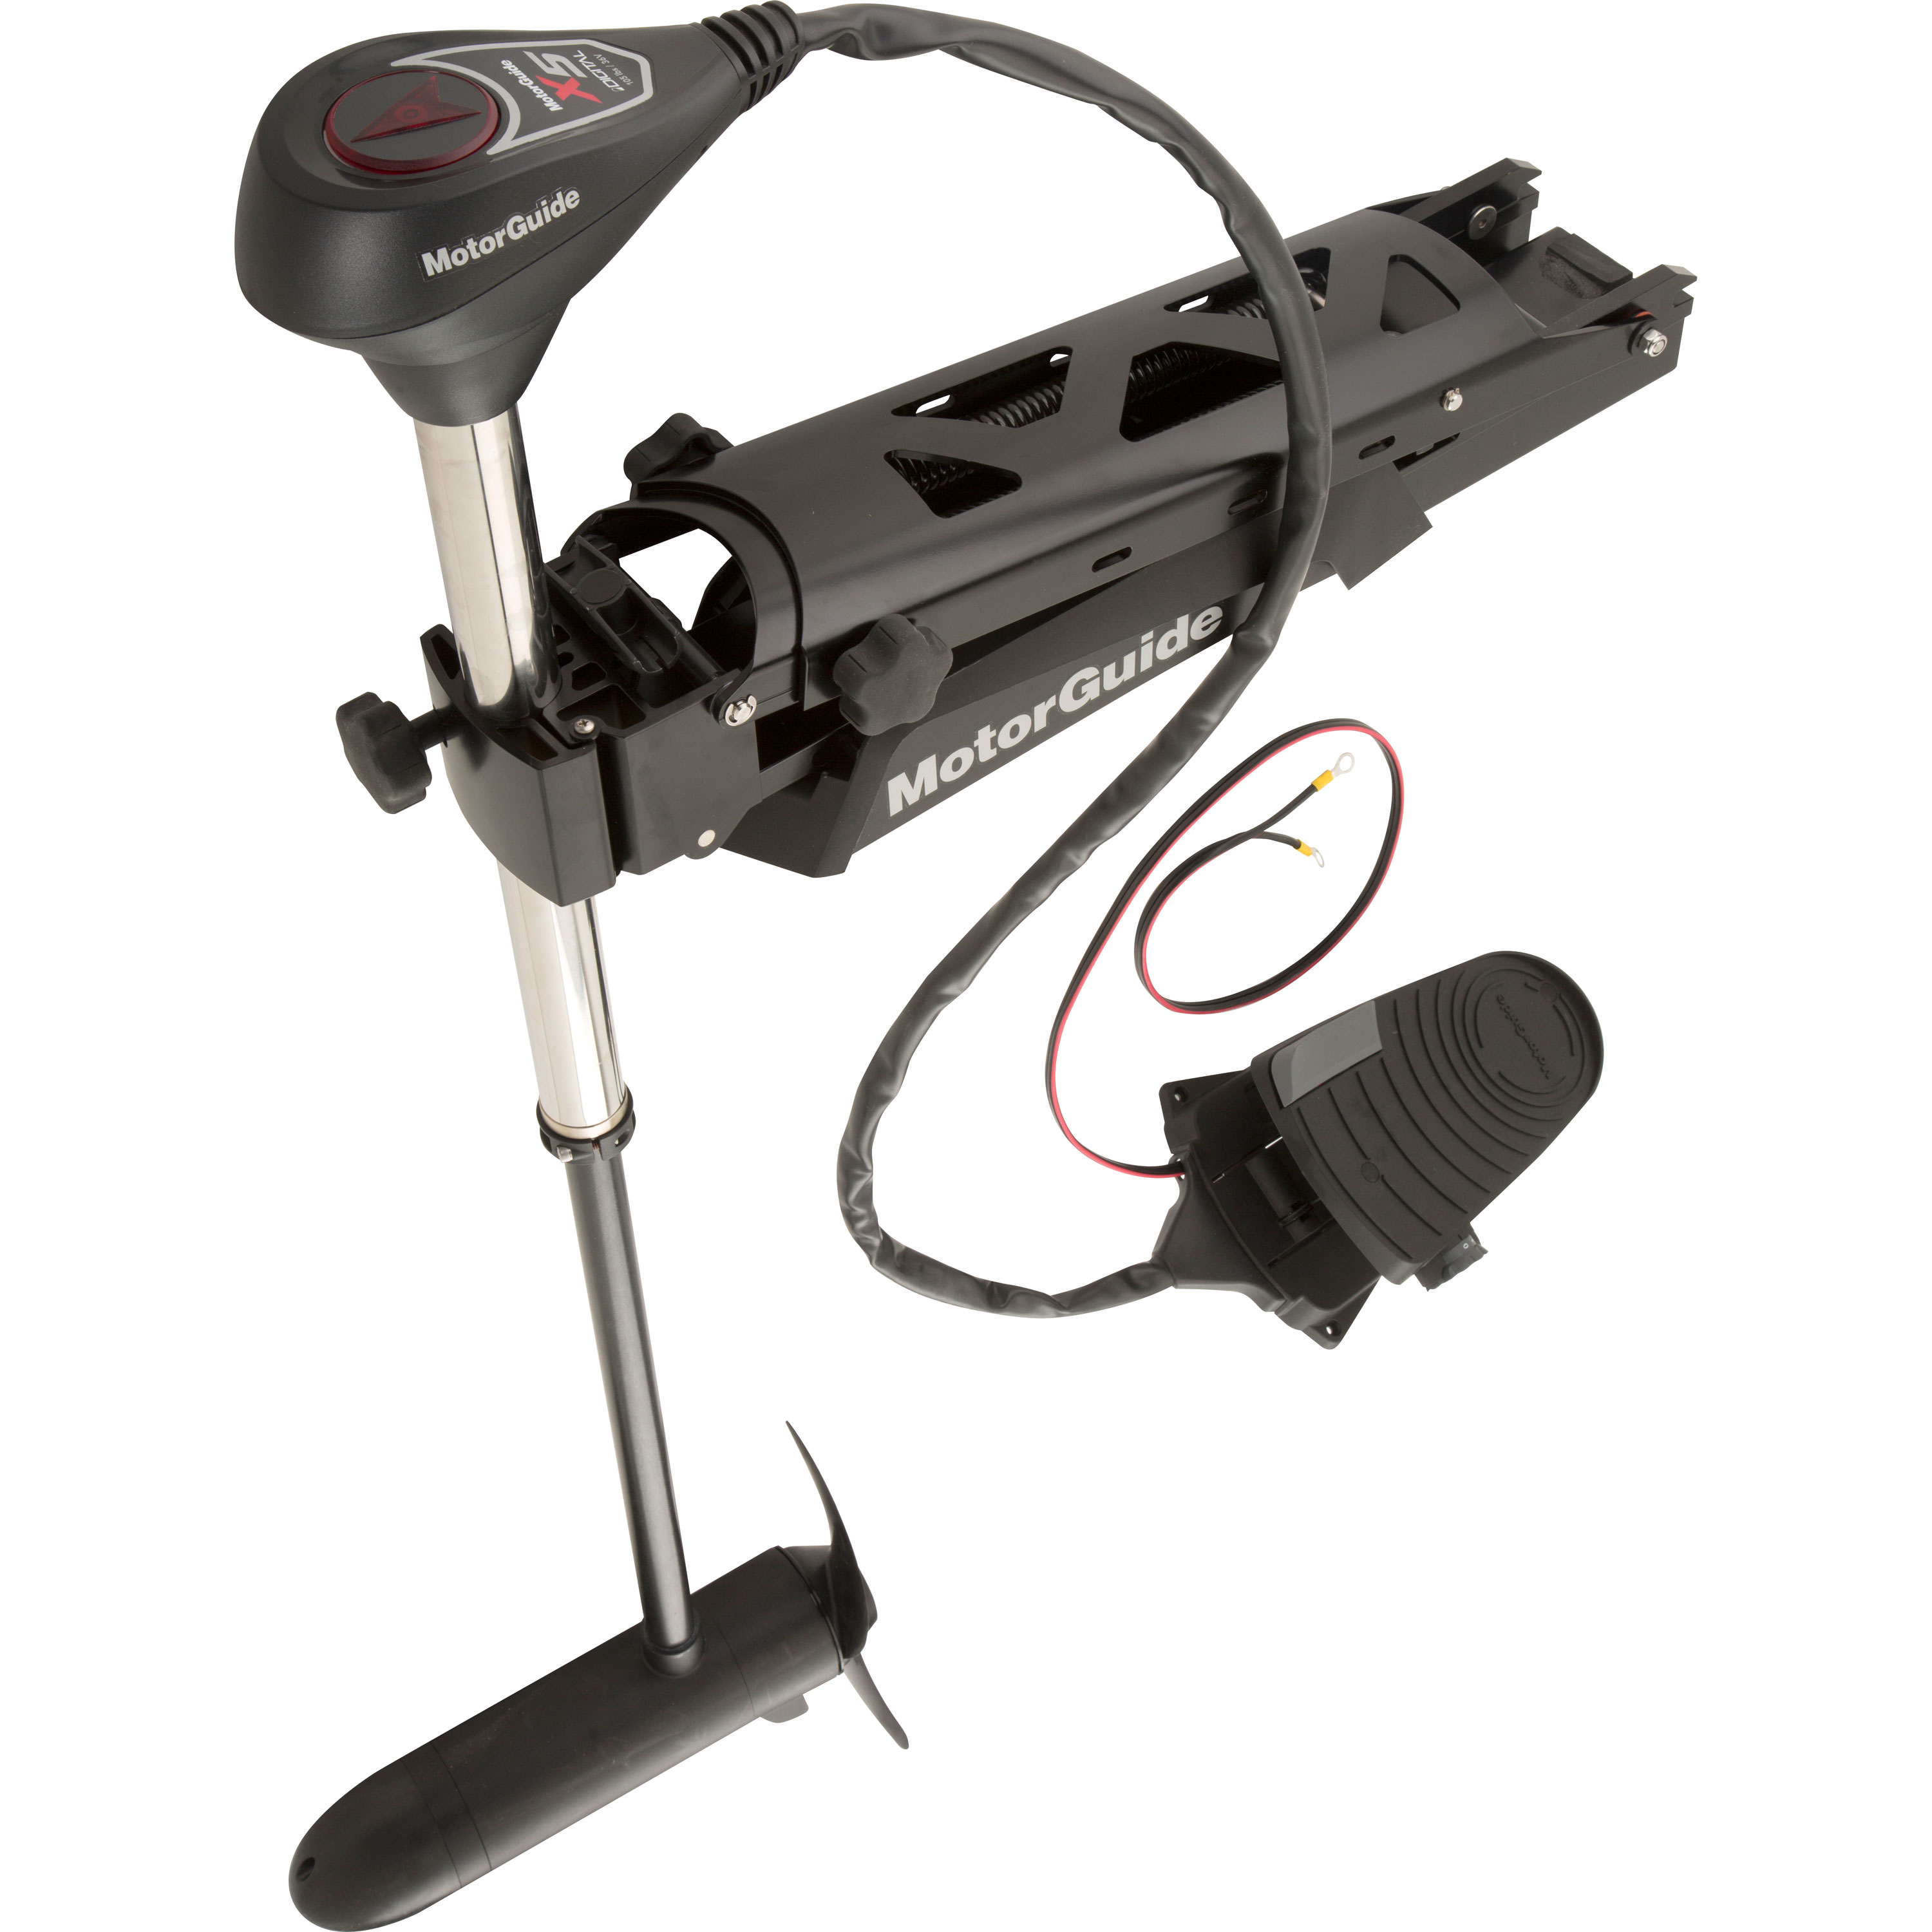 "Motorguide 940500130 Motorguide X5 105Fw 50"" 36V Sonar Foot-Operated"